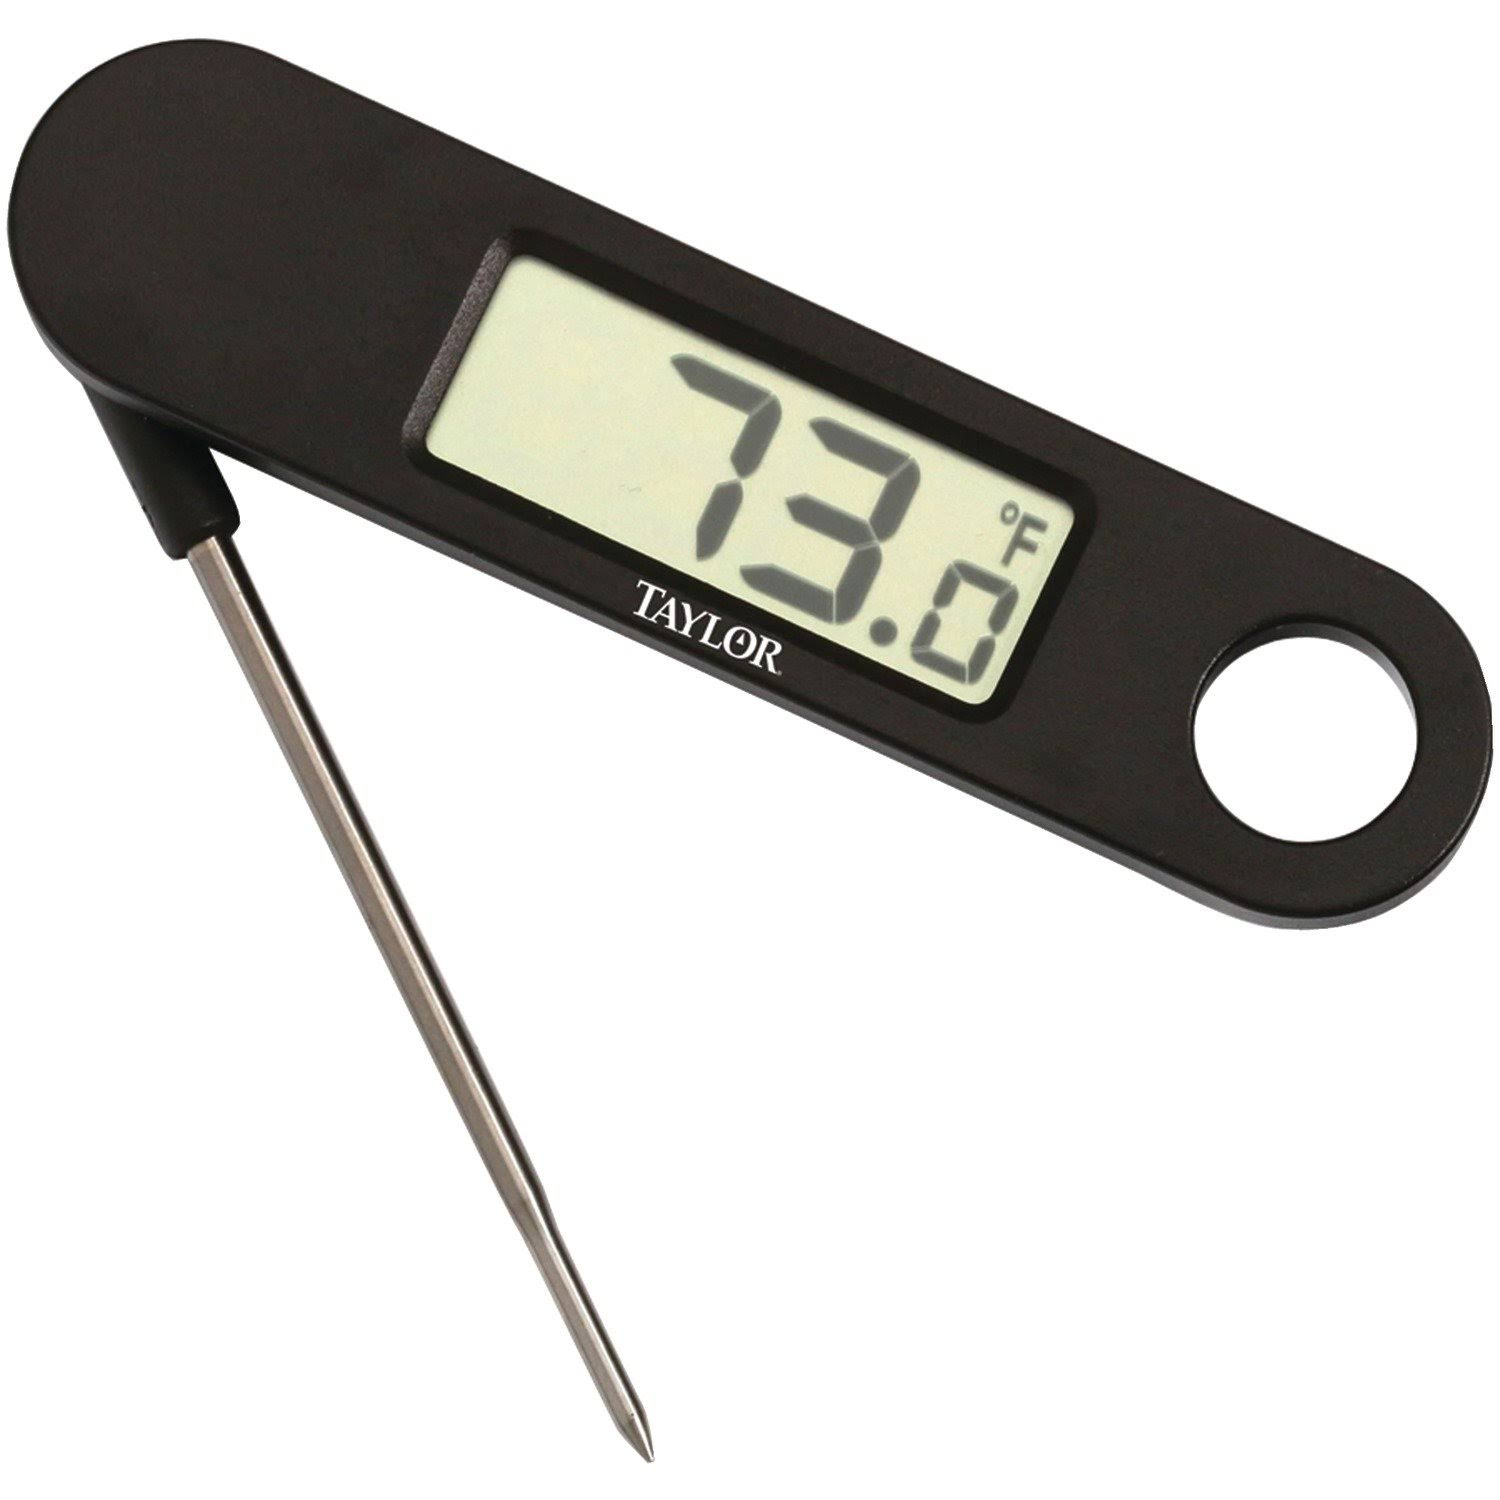 Taylor Thermometer, Folding